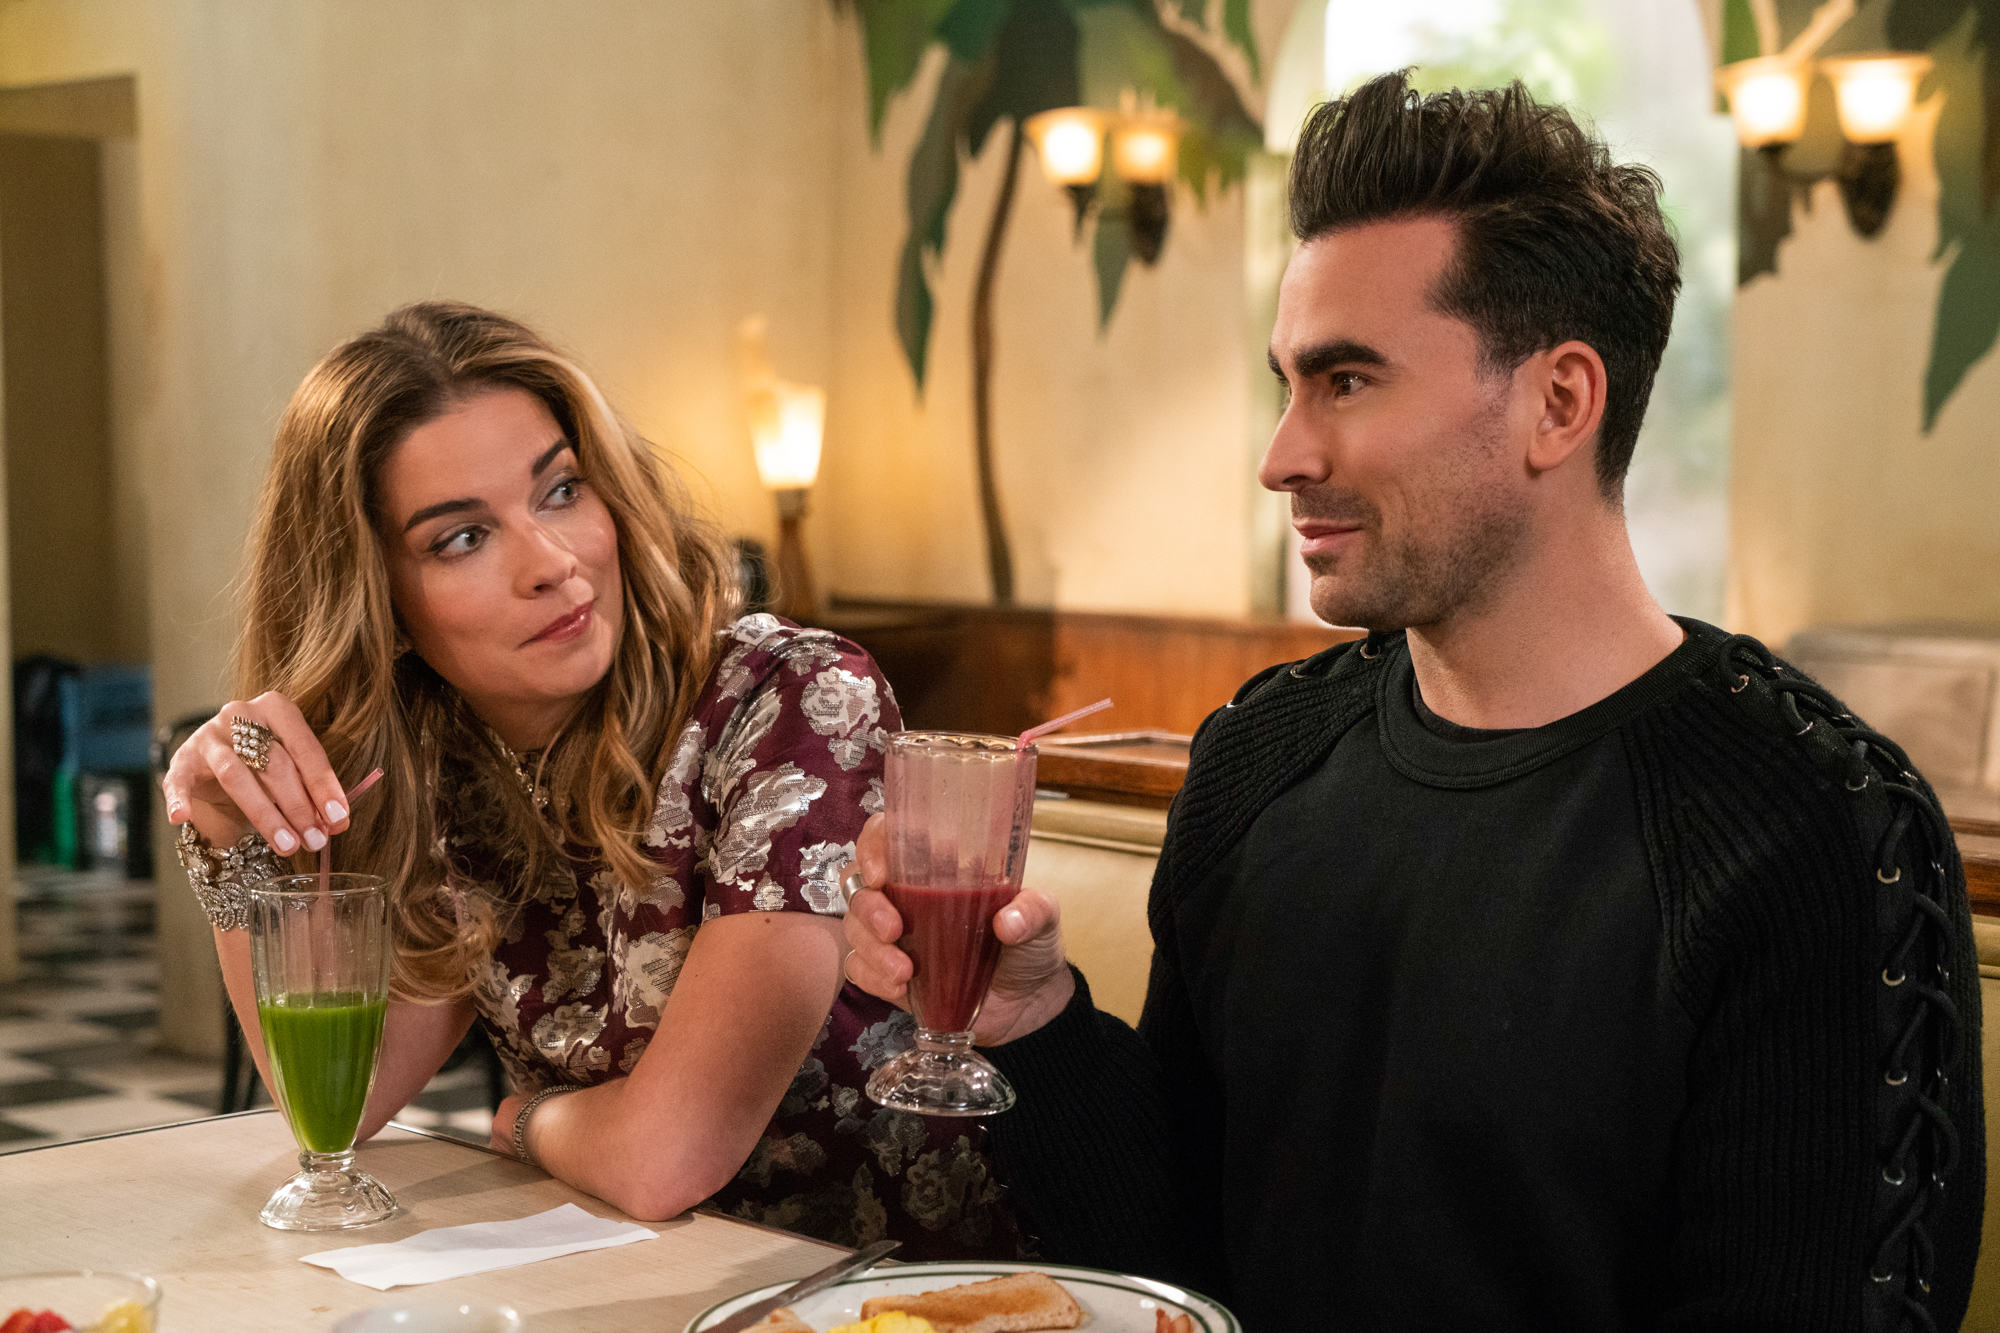 Ode To Cafe Tropical Schitt's Creek